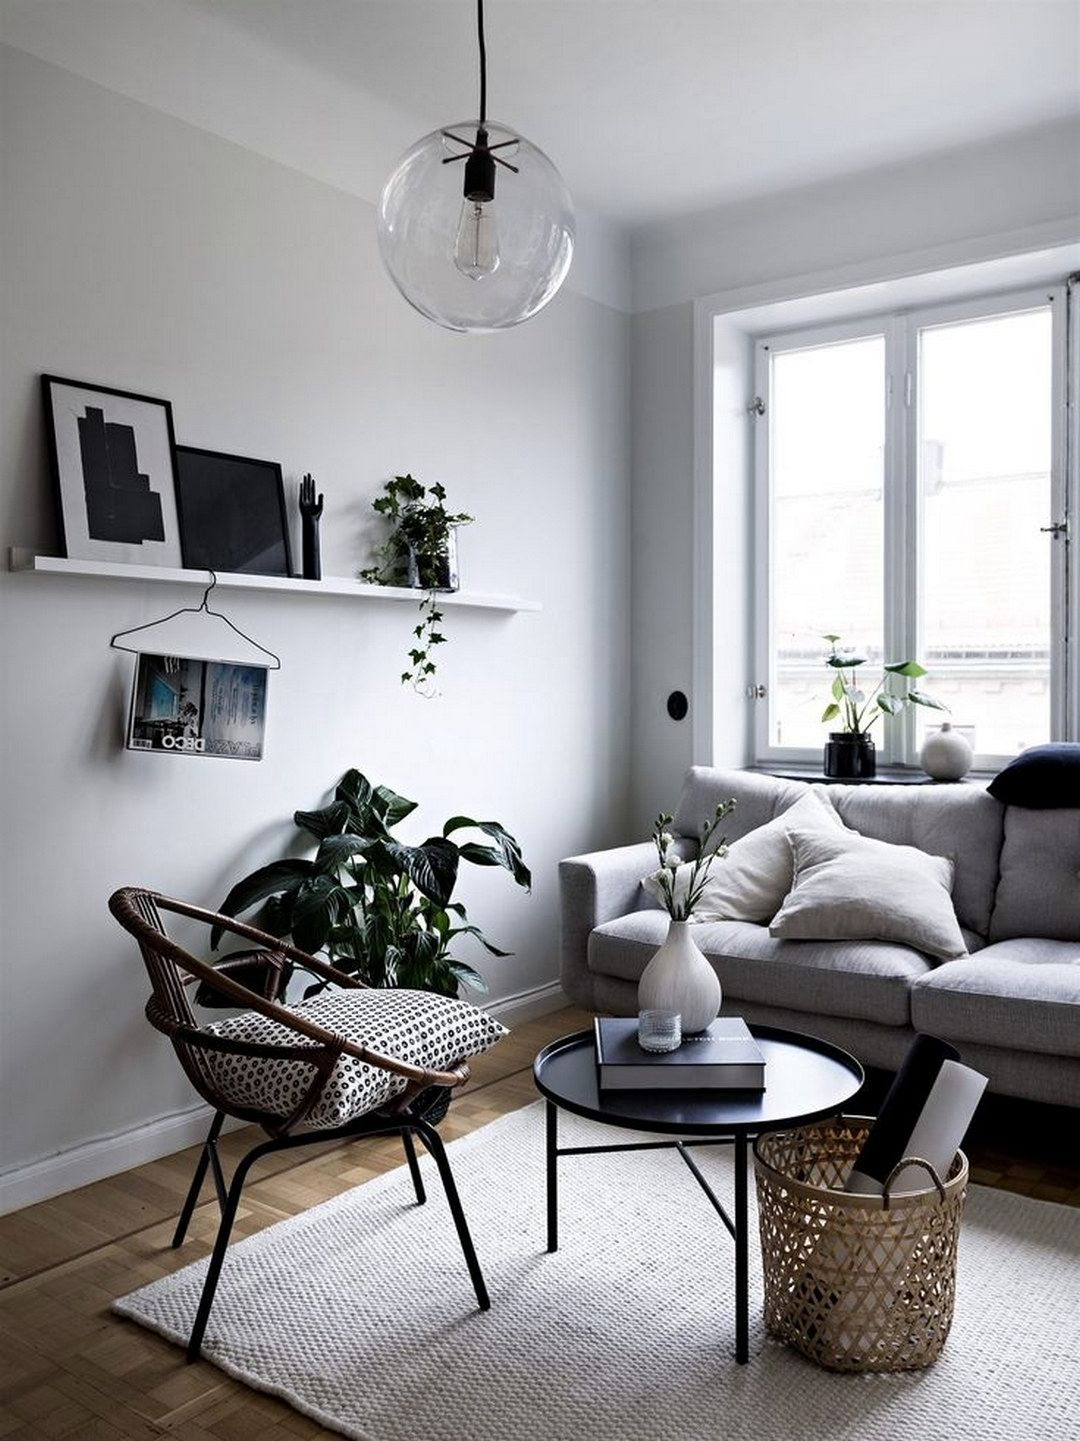 Small Living Room Design, Minimalist Home Decor